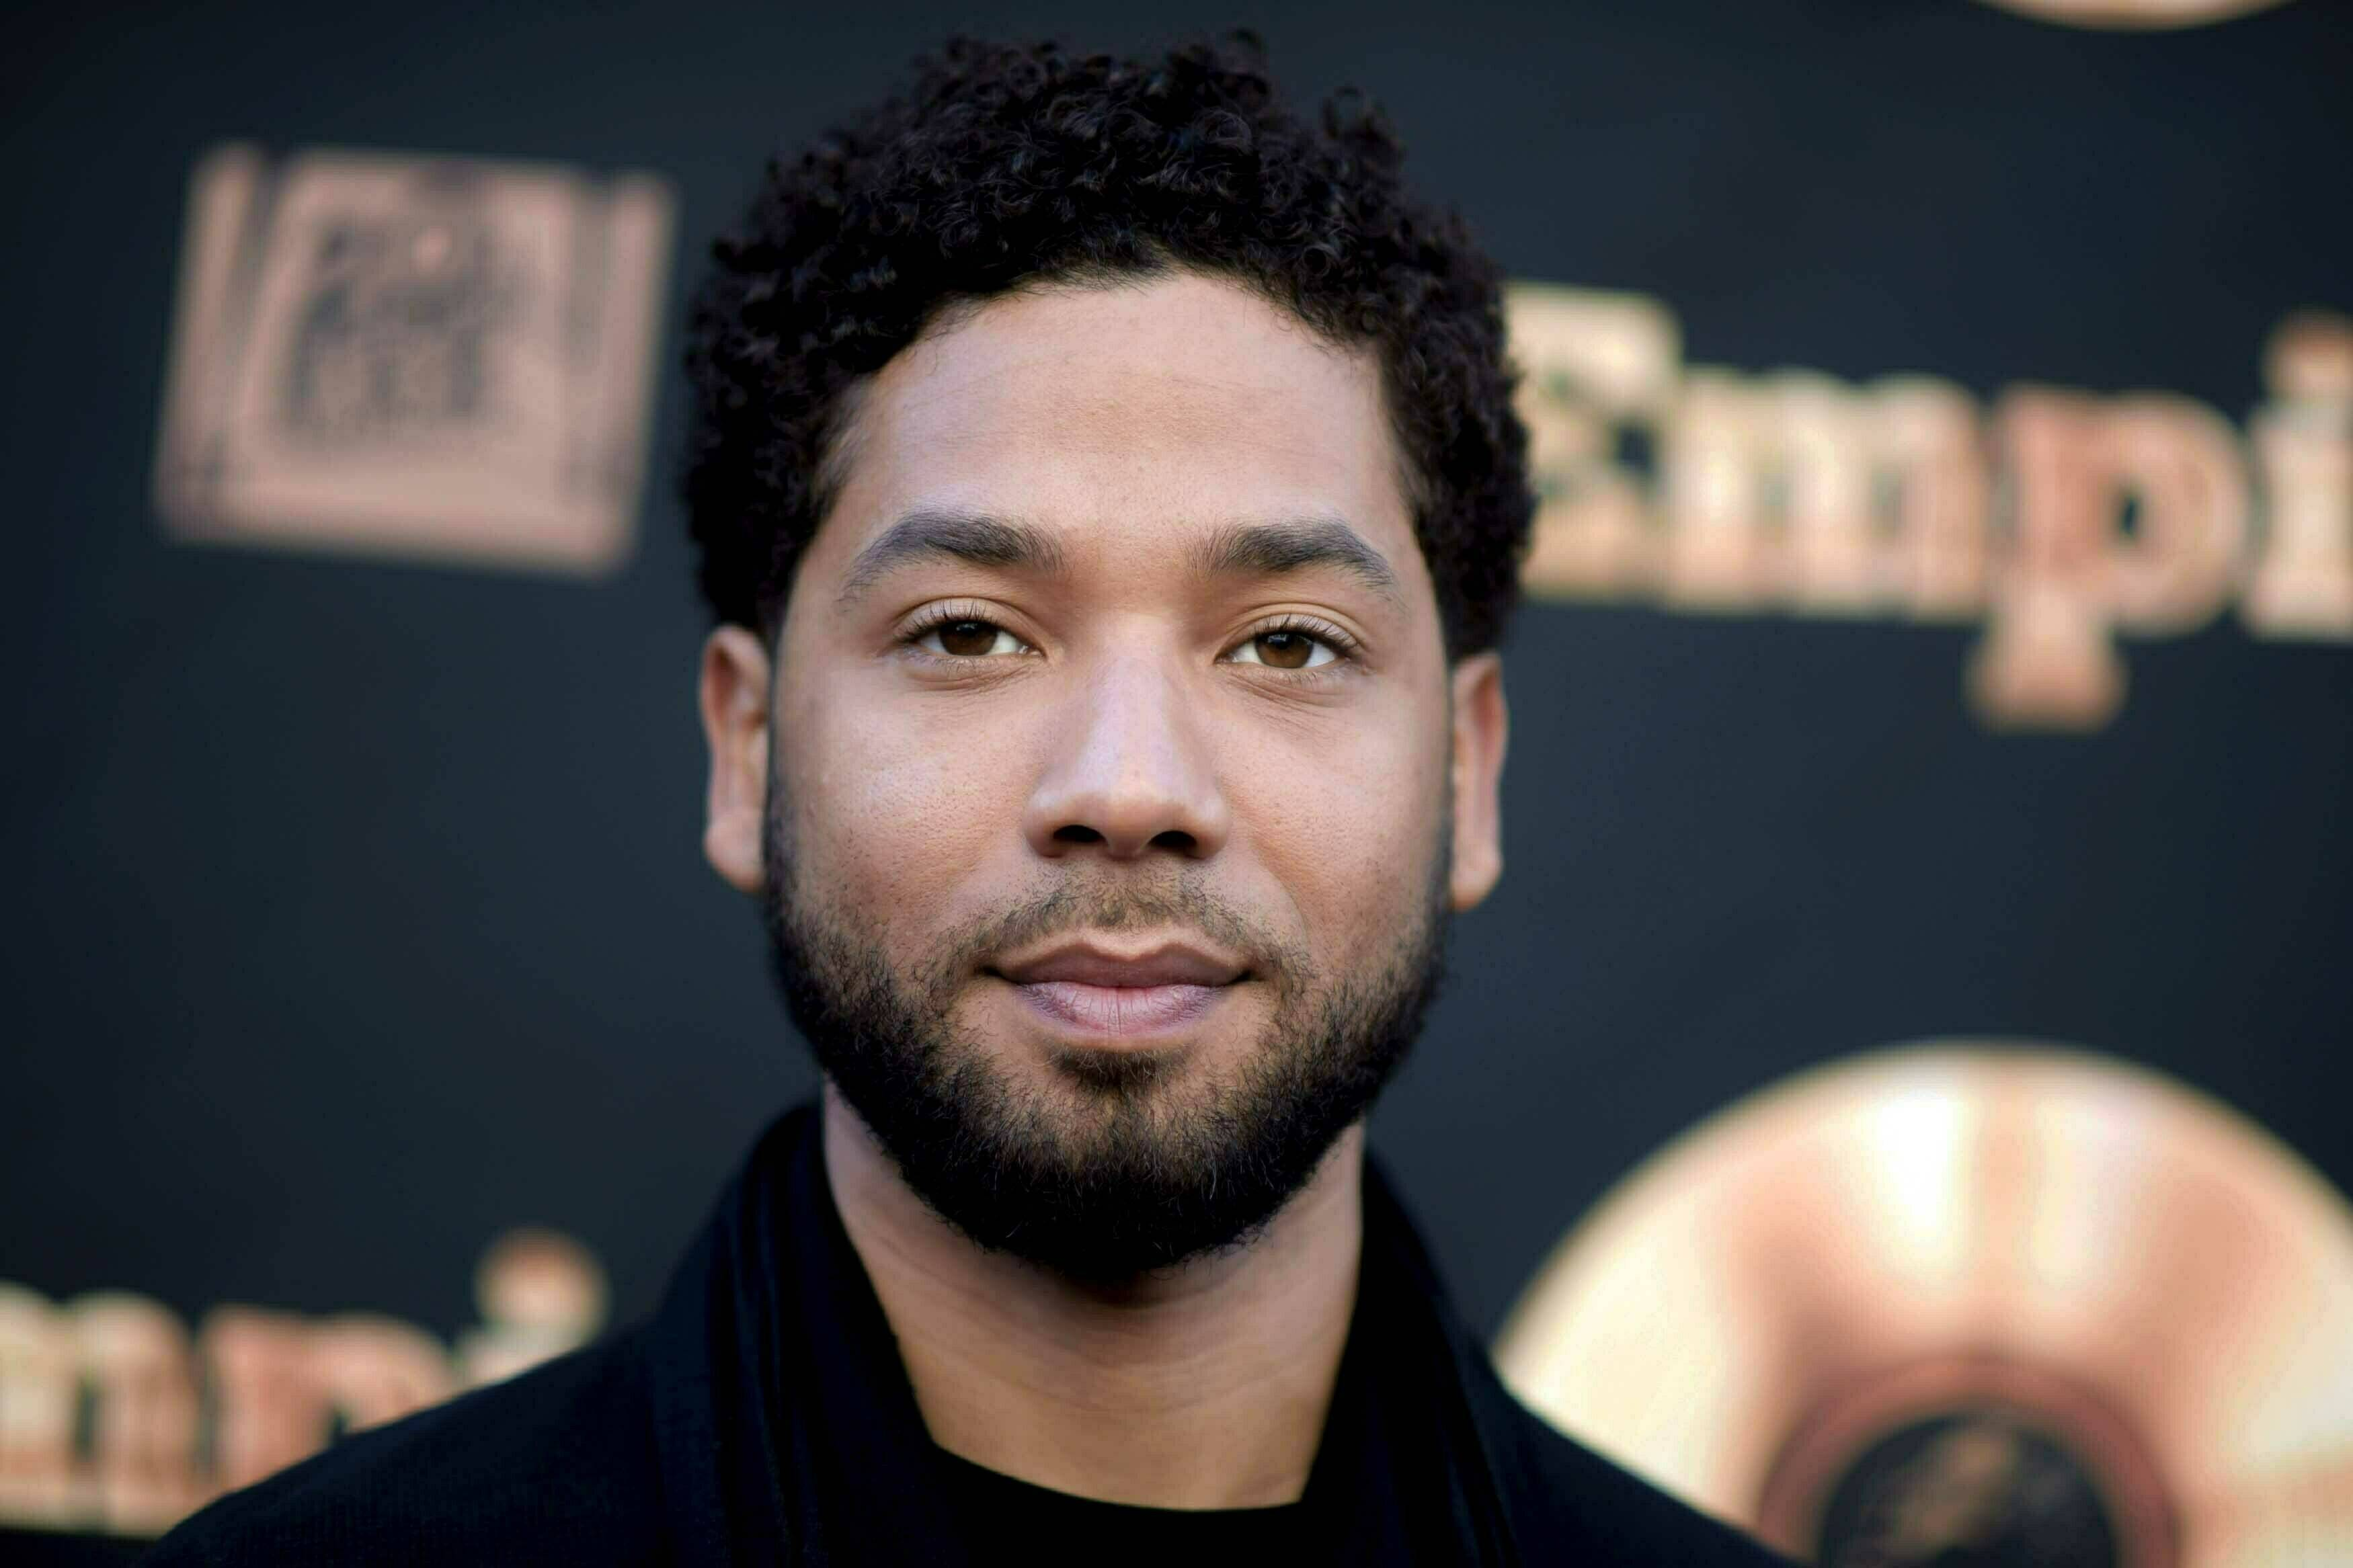 Police source: Brothers say Smollett staged attack after threatening letter